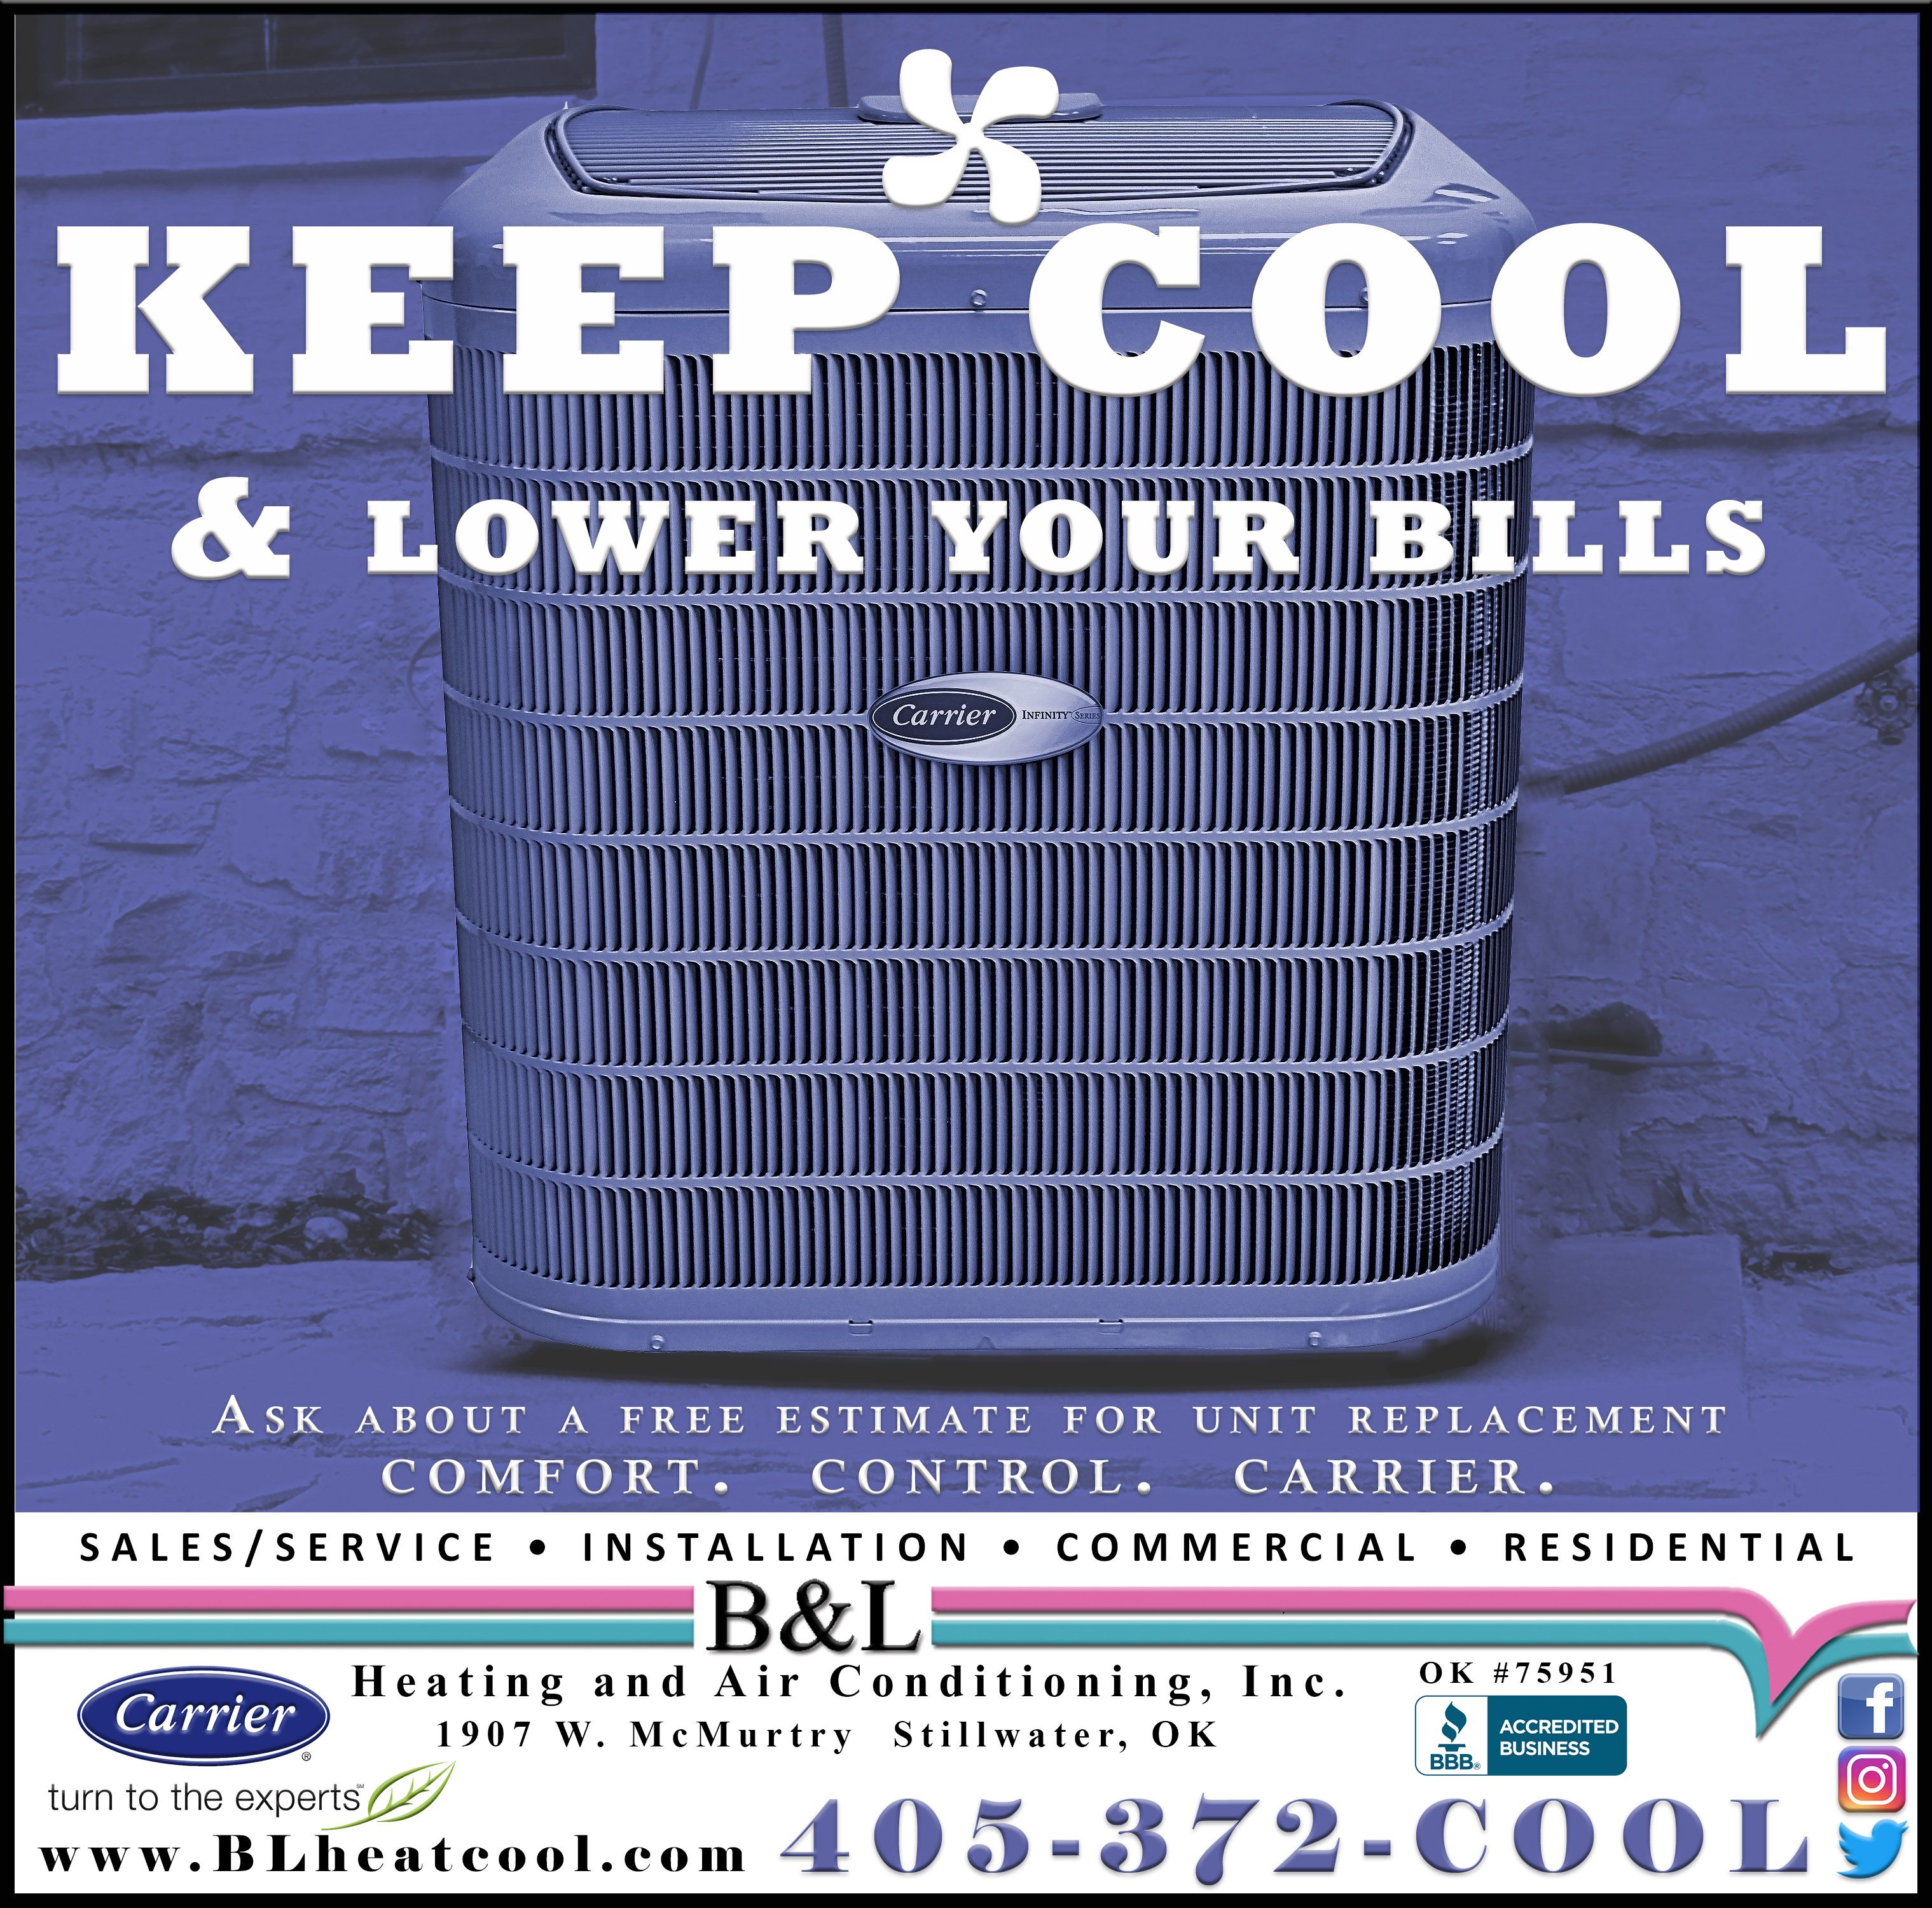 Pin By B L Heating And Air Conditioni On B L Ads Heating And Air